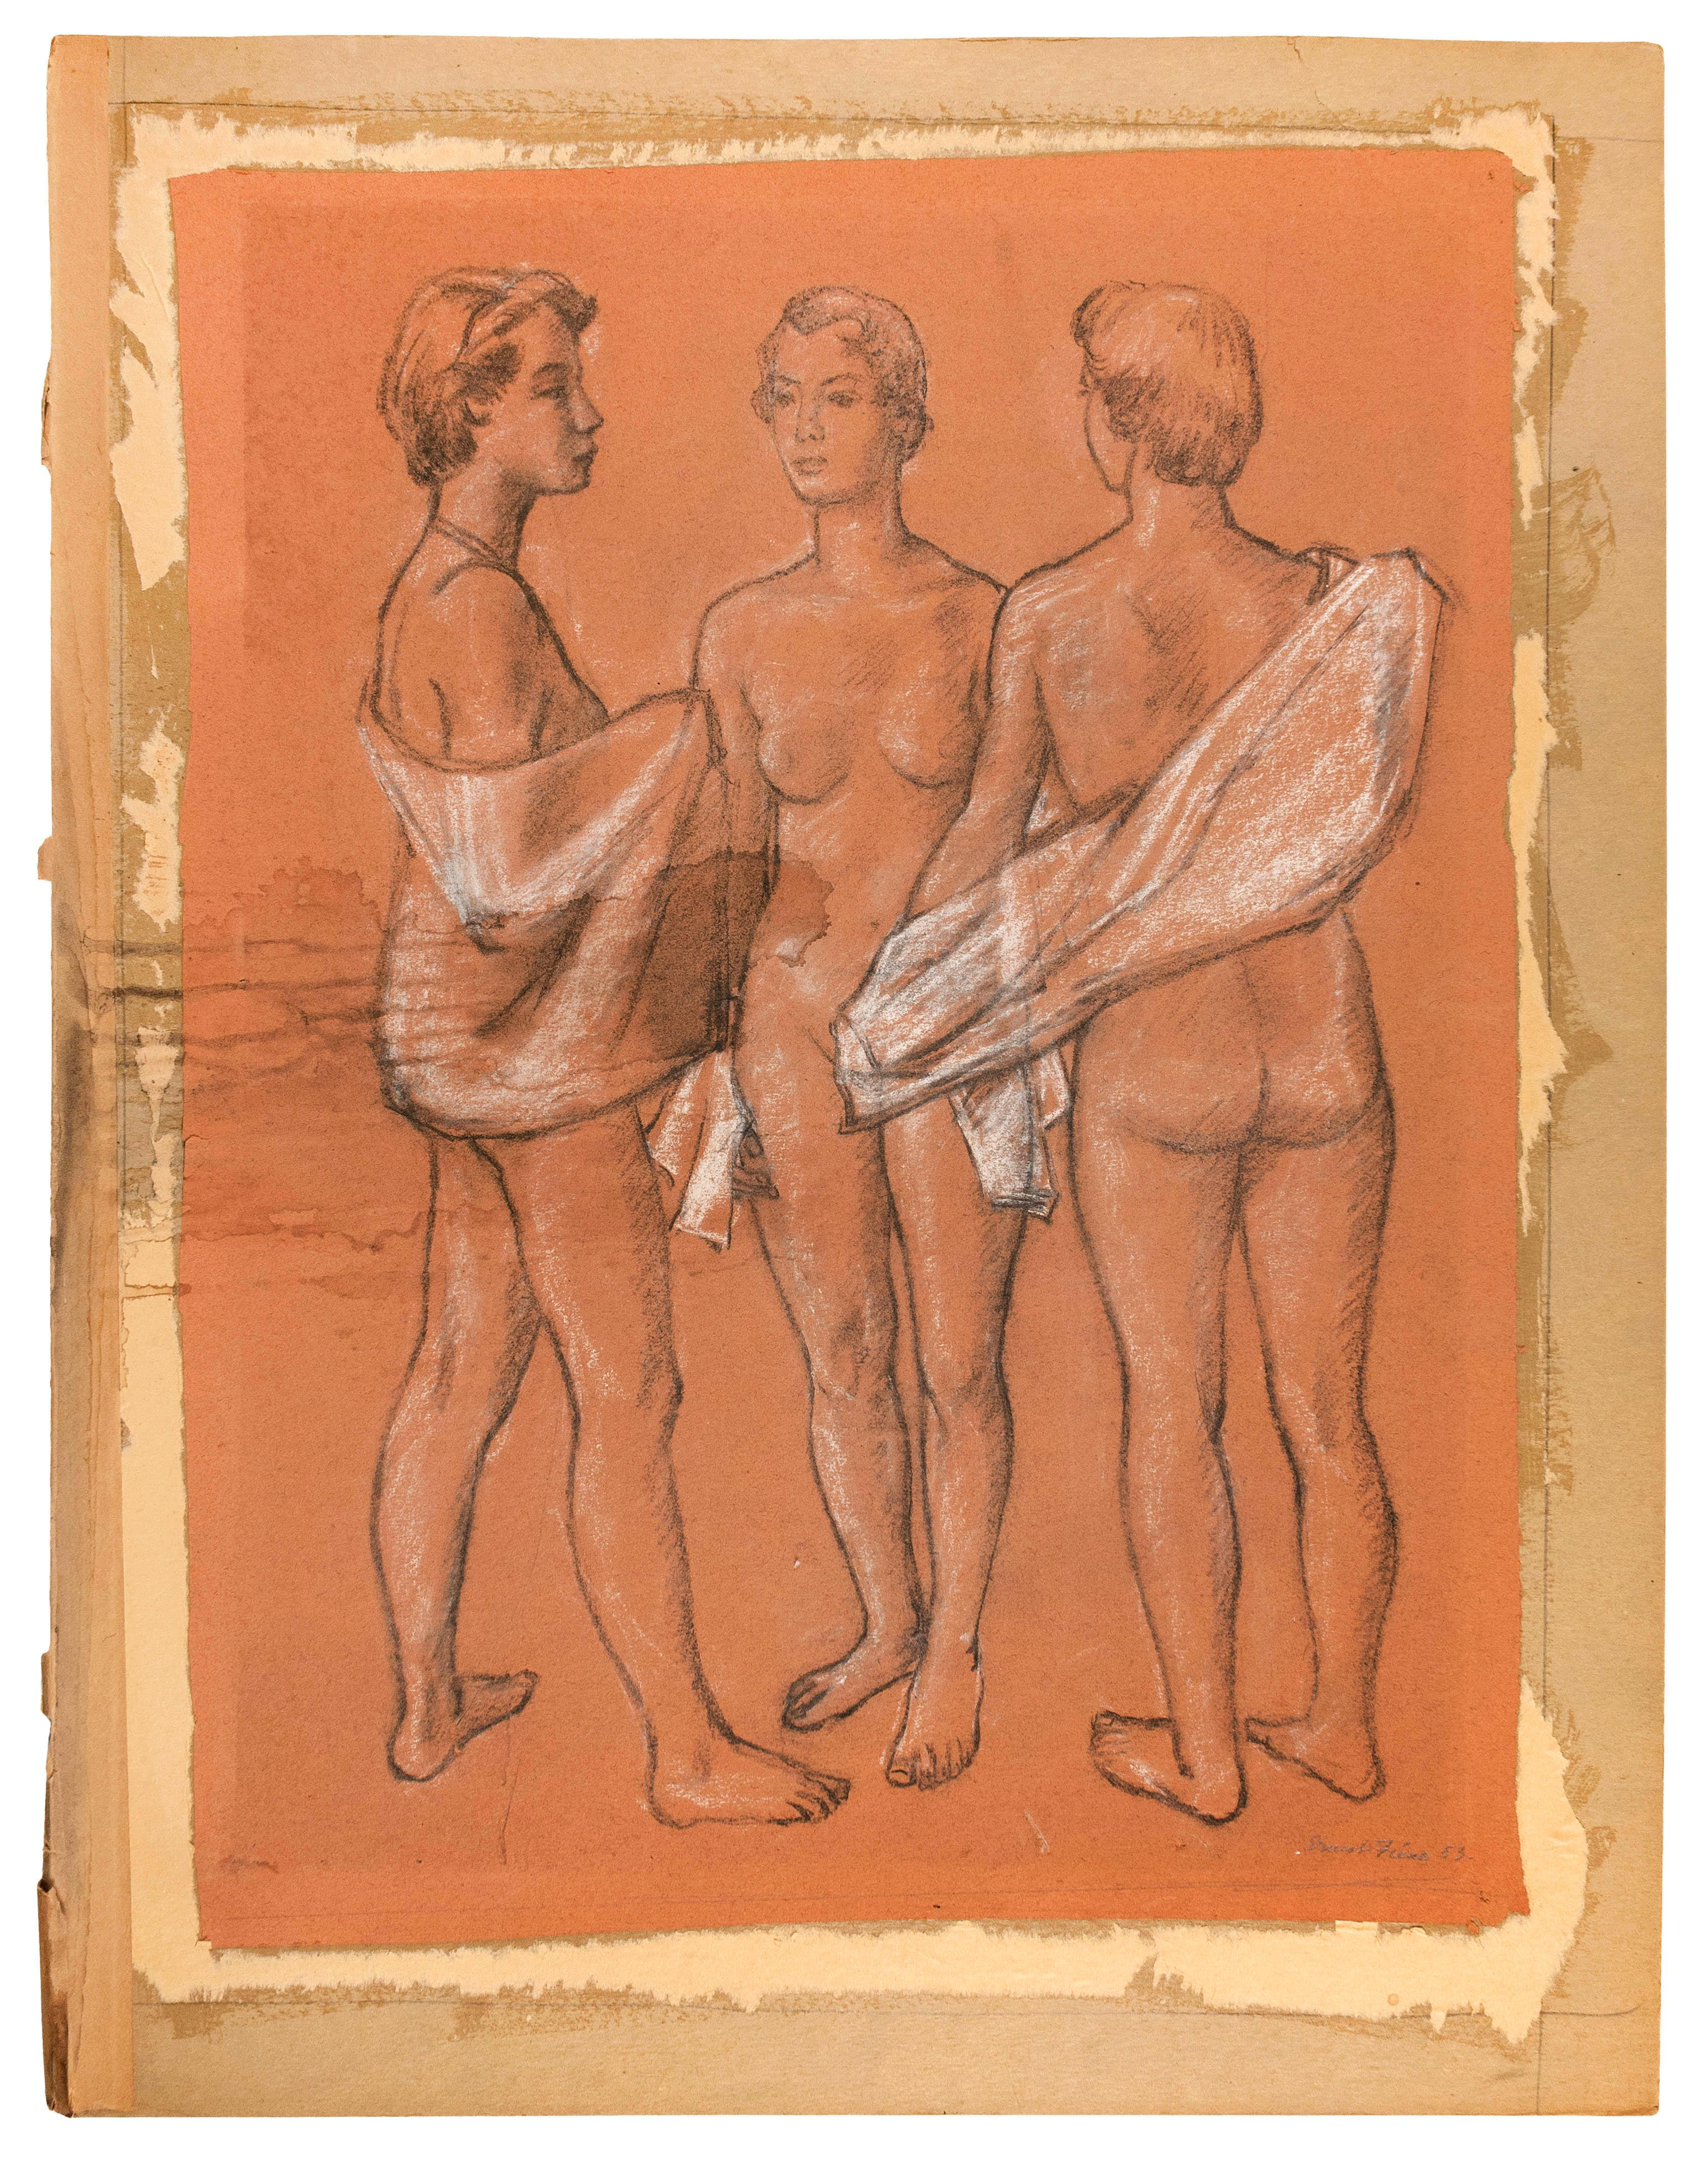 """ERNEST FIENE, New York/Germany, 1894-1965, Study of three nudes., Pastel and charcoal on paper laid down on stiff board, image 25.5""""..."""